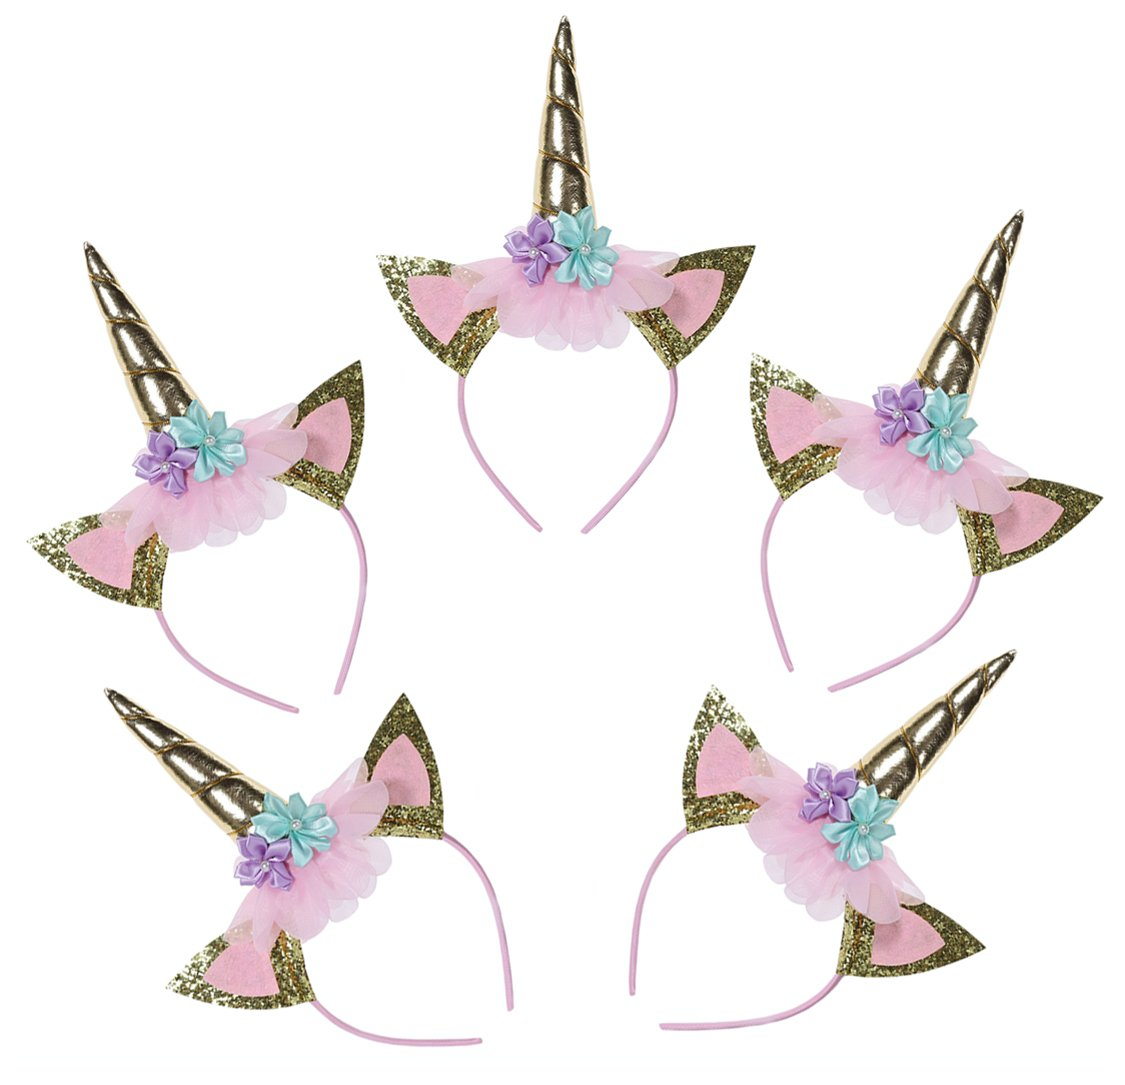 Unicorn Party Supplies favors Pack of 5 Unicorn Horn Headband with Glitter Ears, Unicorn Theme Theme Birthday Cosplay for Girls Children Gift Christmas Halloween Party Costume